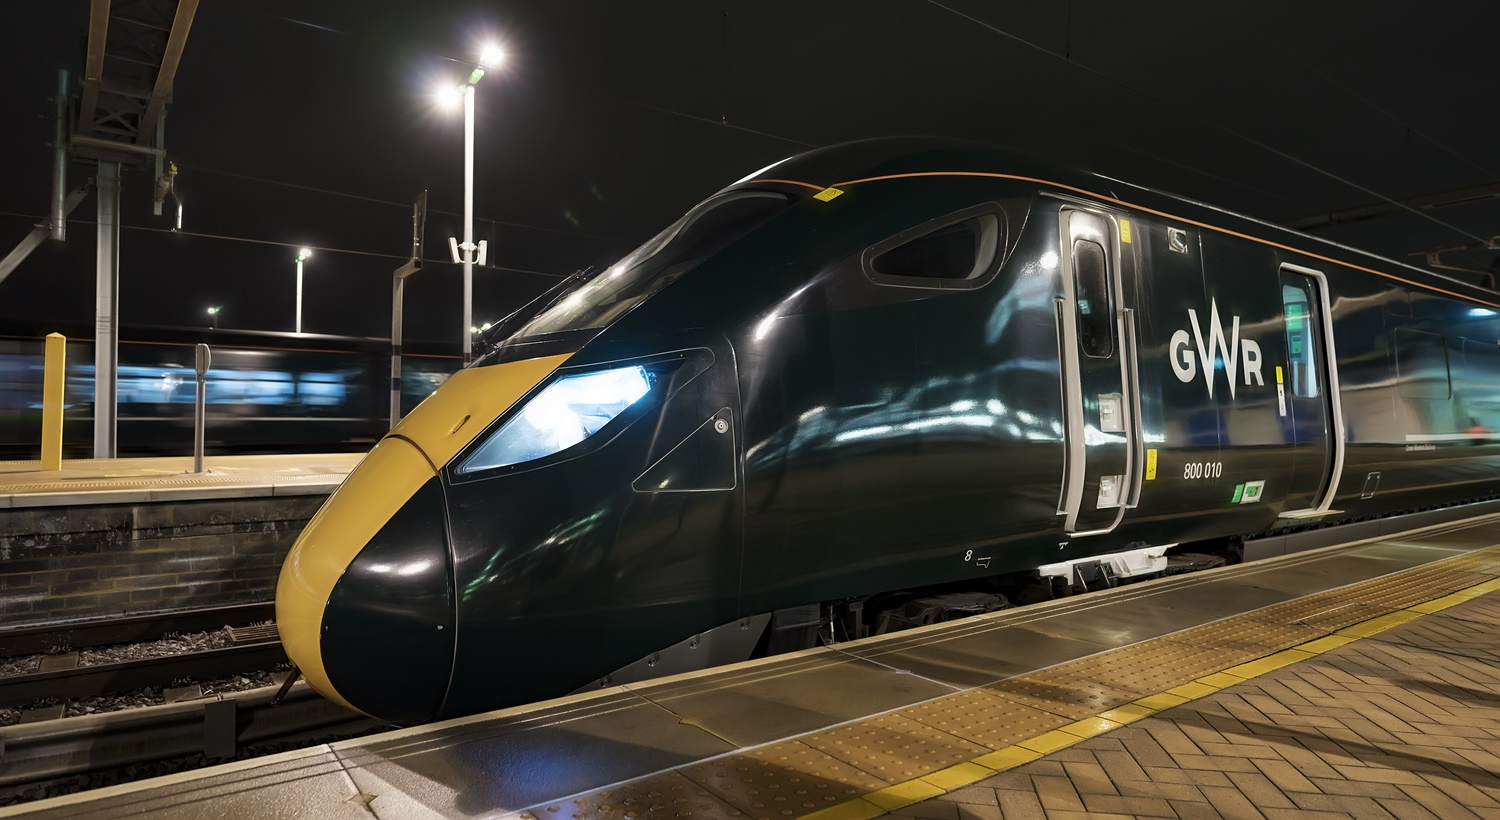 Final intercity train sees GWR deliver 10,000 more seats